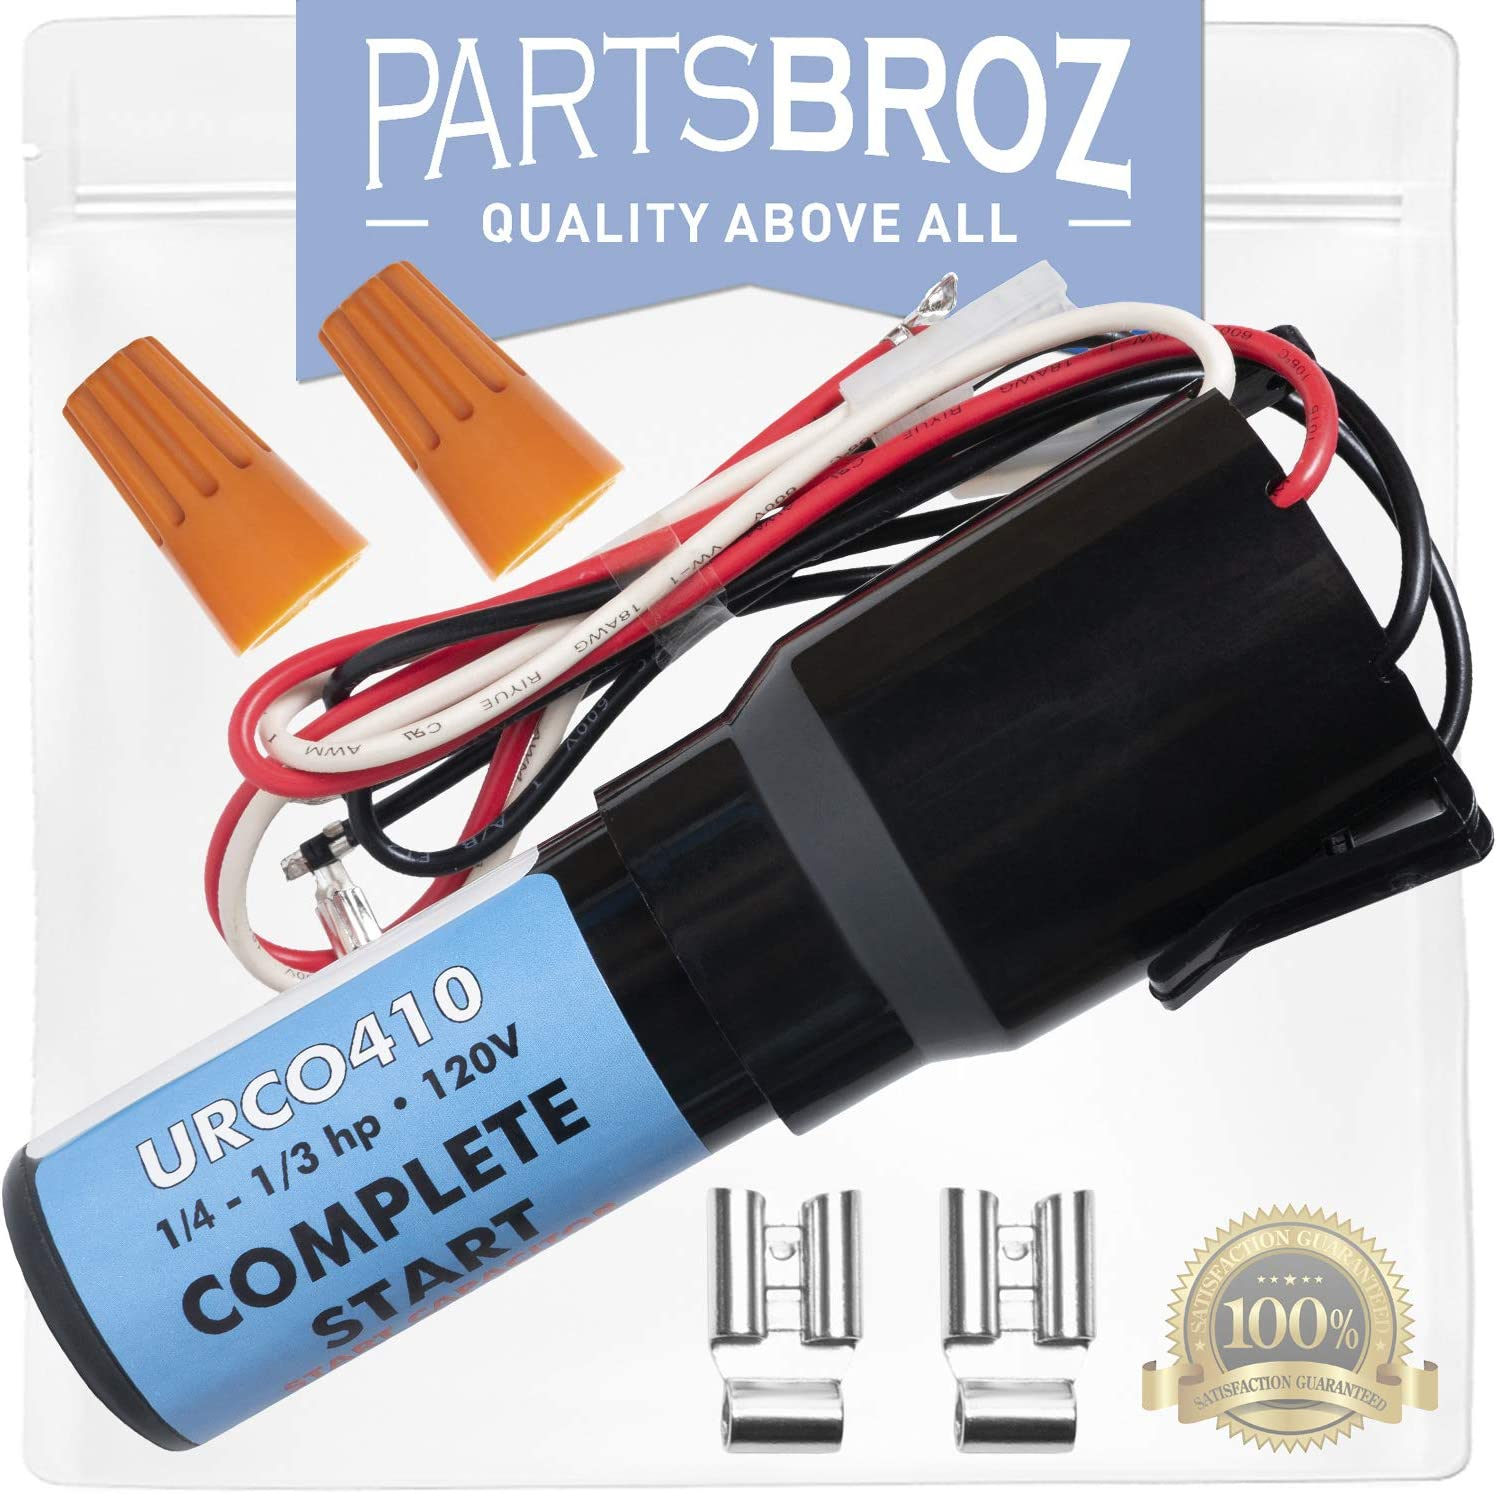 URCO410 3-in-1 Relay Combo Kit for Capillary Refrigeration Systems by PartsBroz - 1/4 to 1/3 HP - Replaces Part Numbers TJ90URCO410, AP4503415, ERPU410, URC041 & URCO41